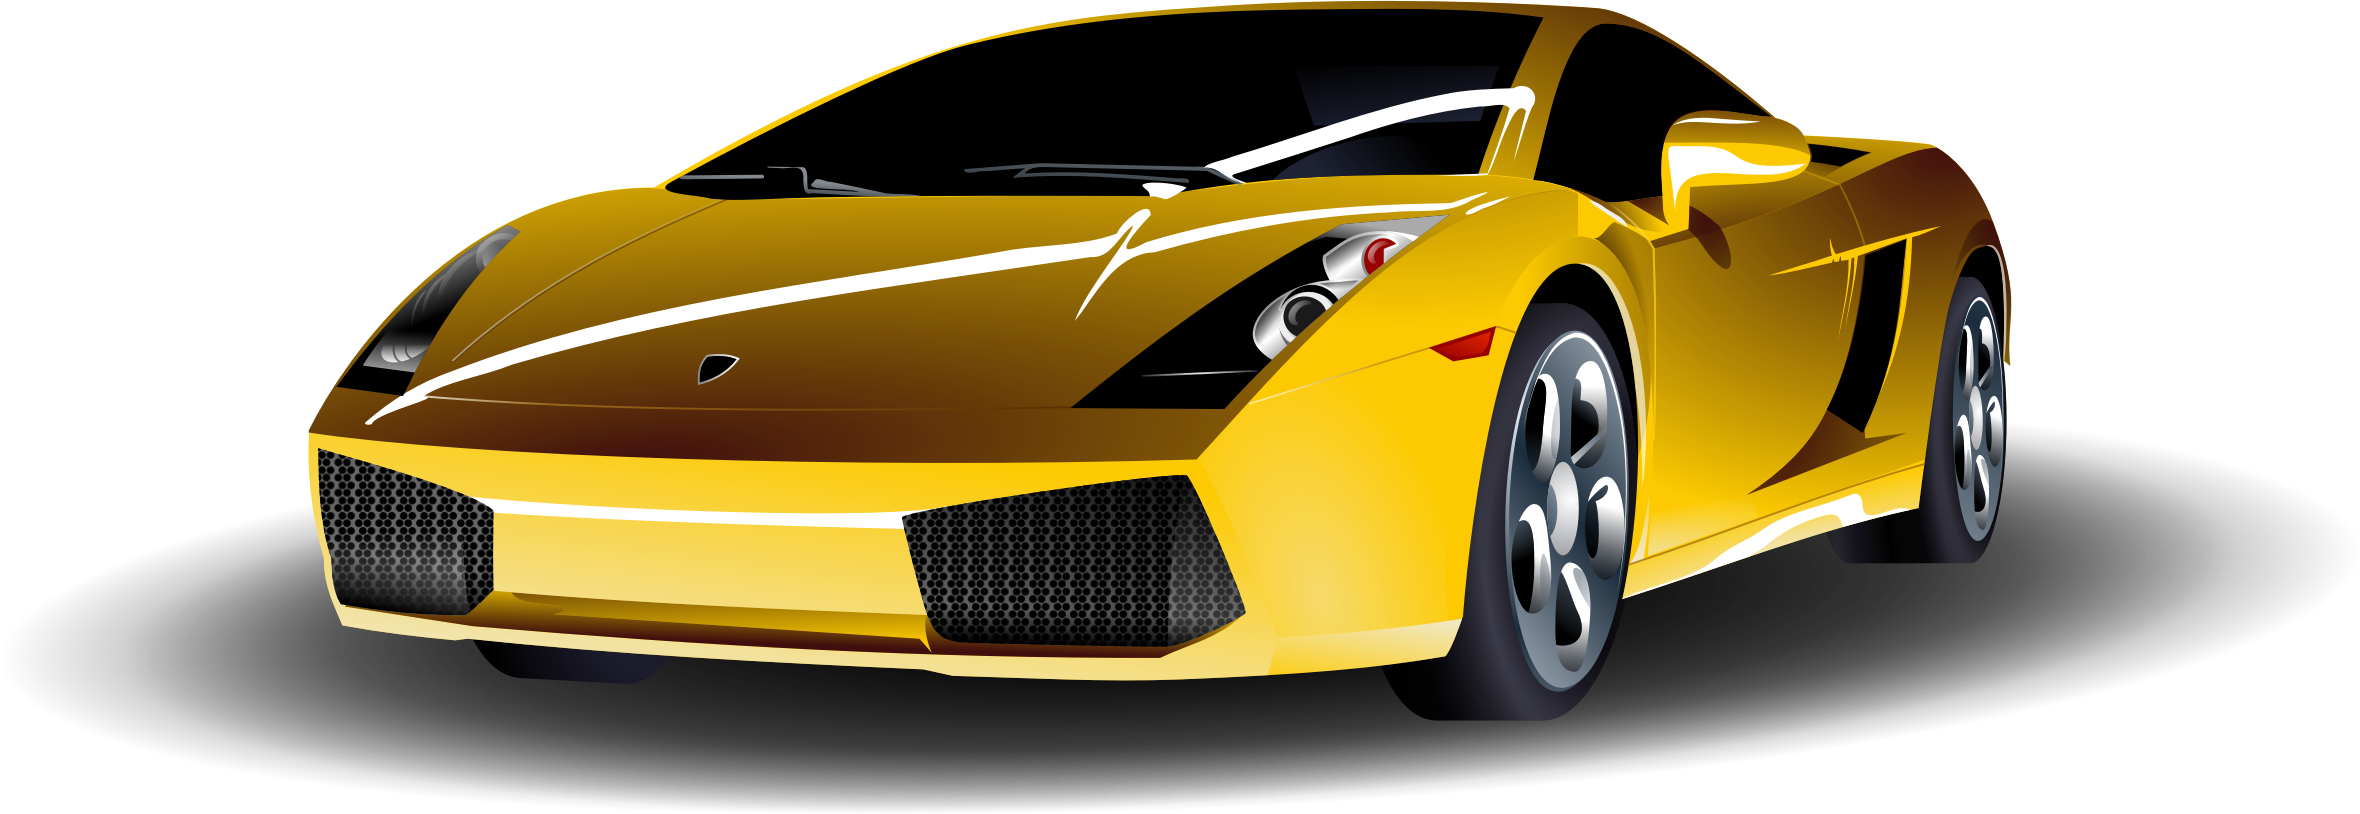 Yellow Sports Car by ryanlerch